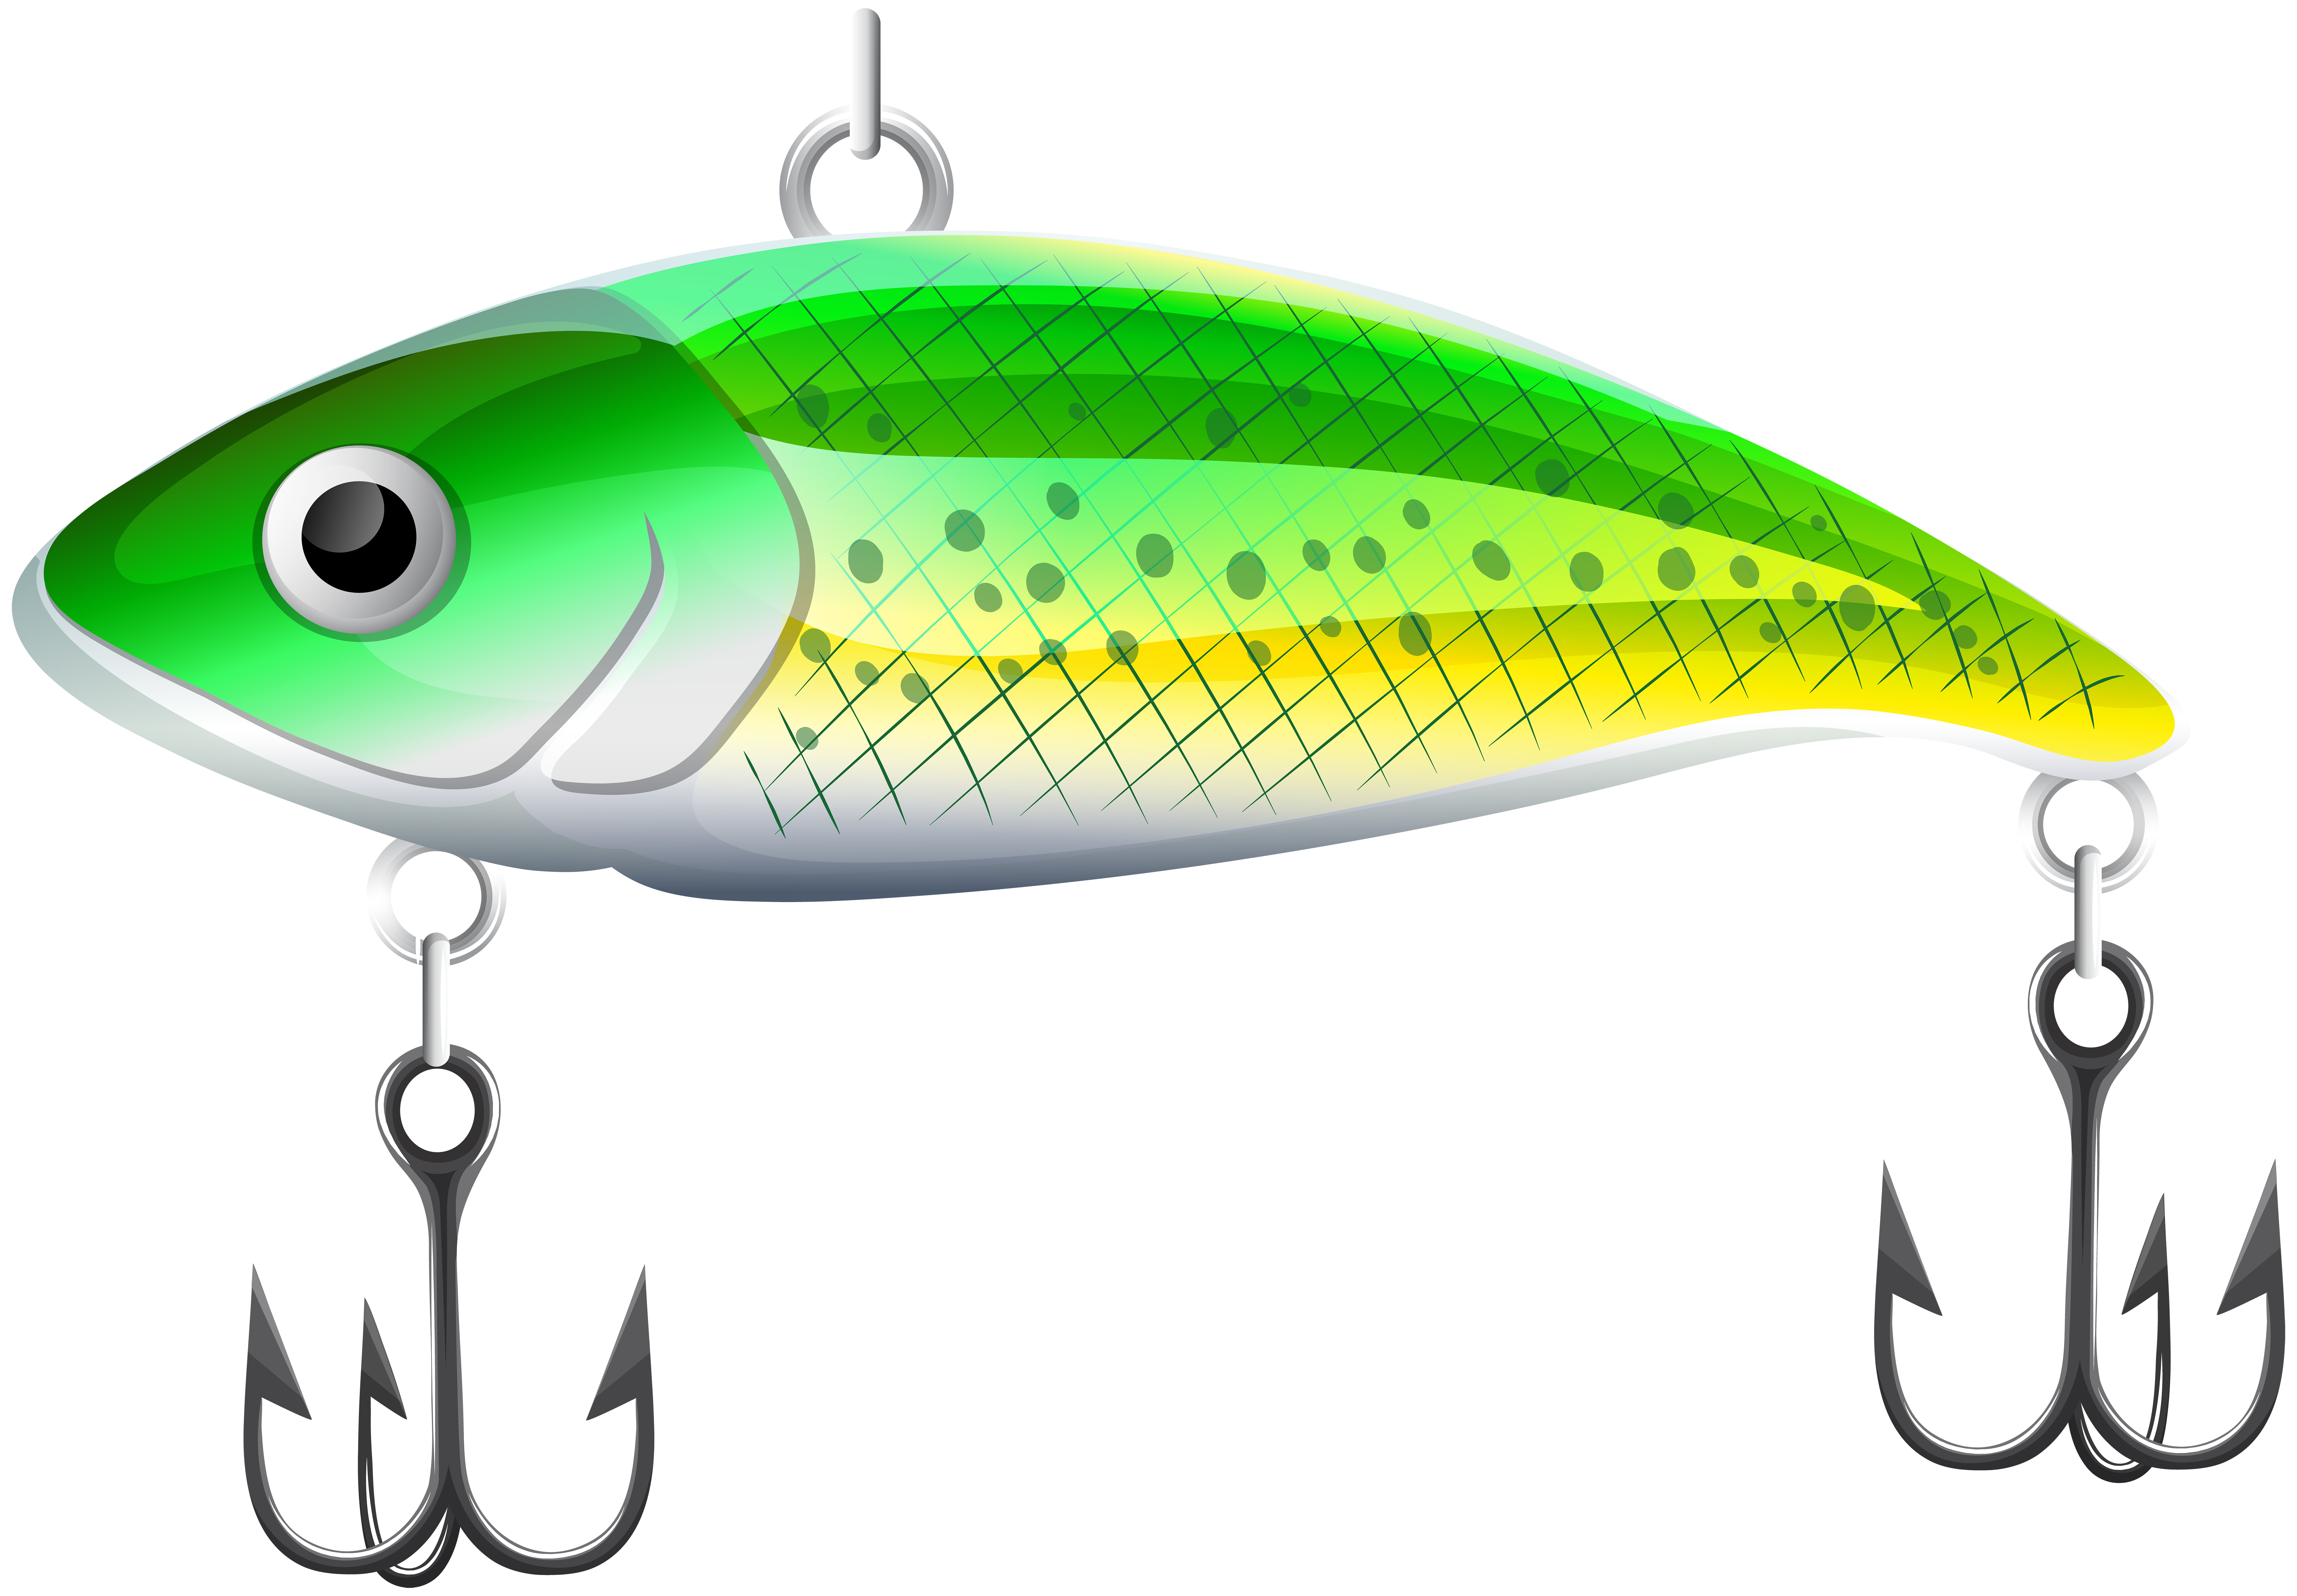 Fishing lures clipart clipart images gallery for free download.